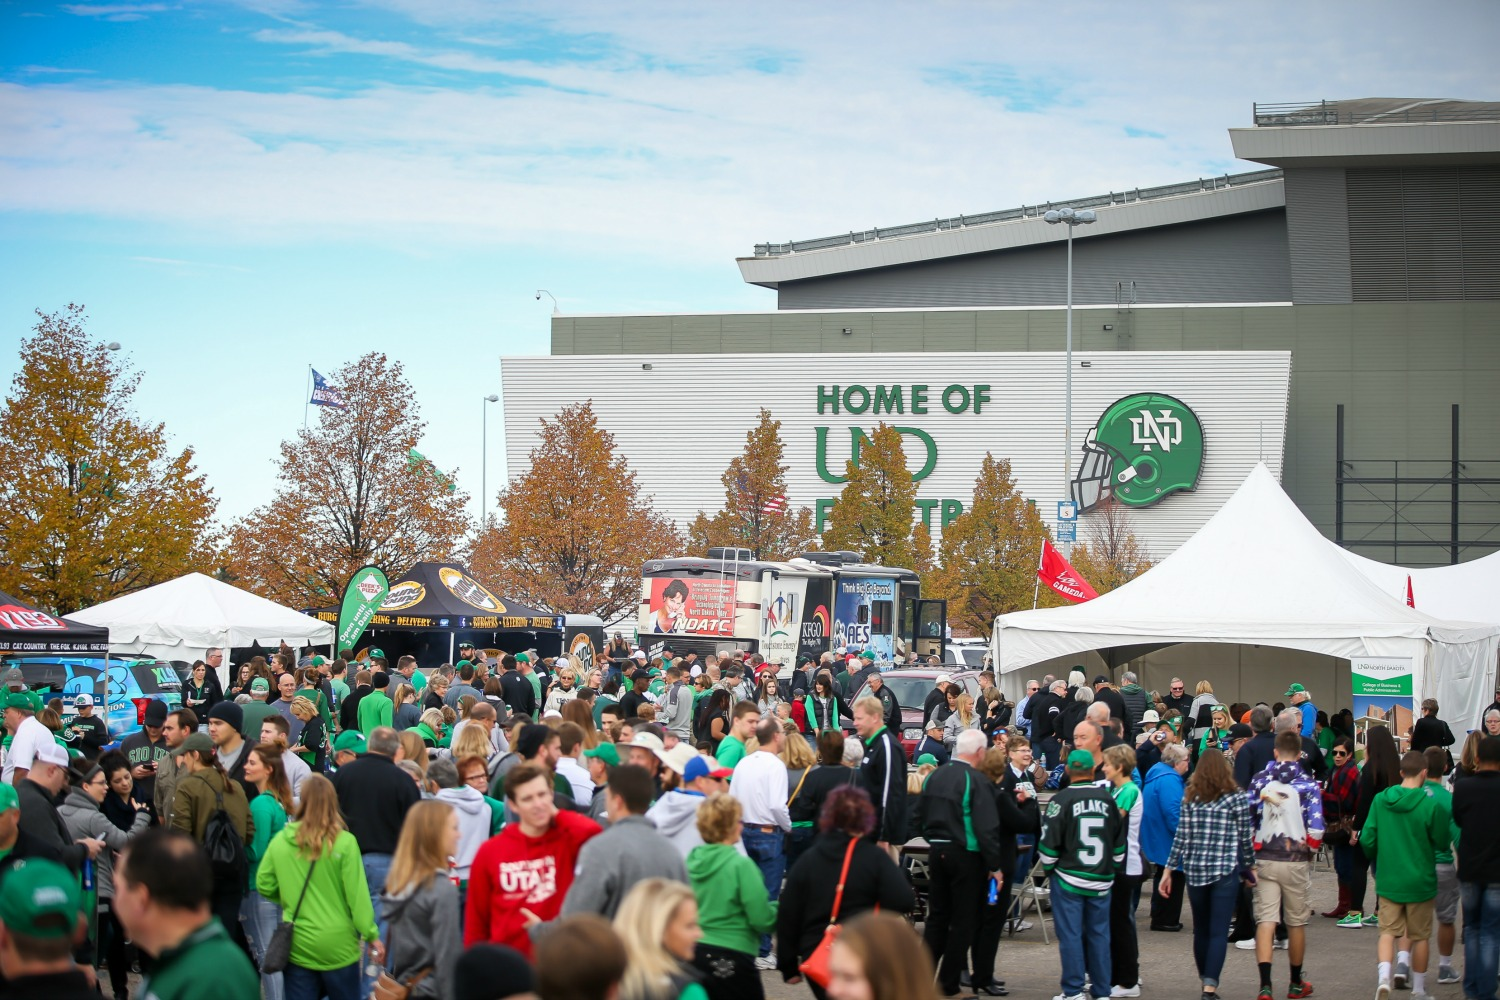 UND fans get ready to cheer on the football team at the Homecoming Tailgate.